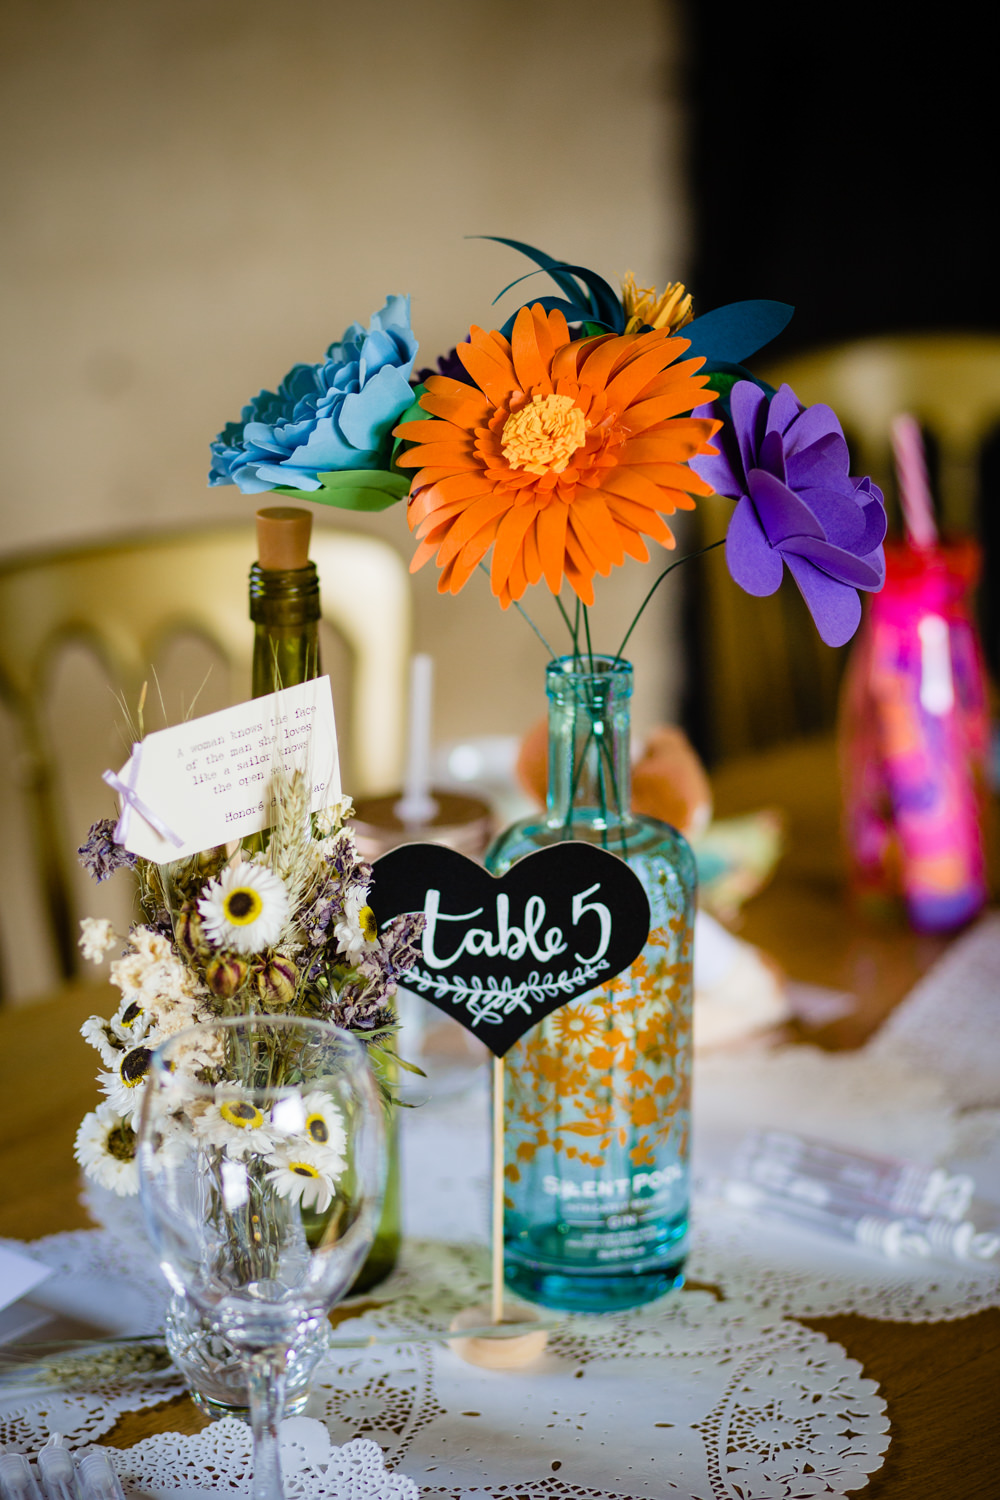 Centrepiece Decor Colorful Paper Flowers Bottles Table Number Cowshed Woodhall Farm Wedding Emma and Rich